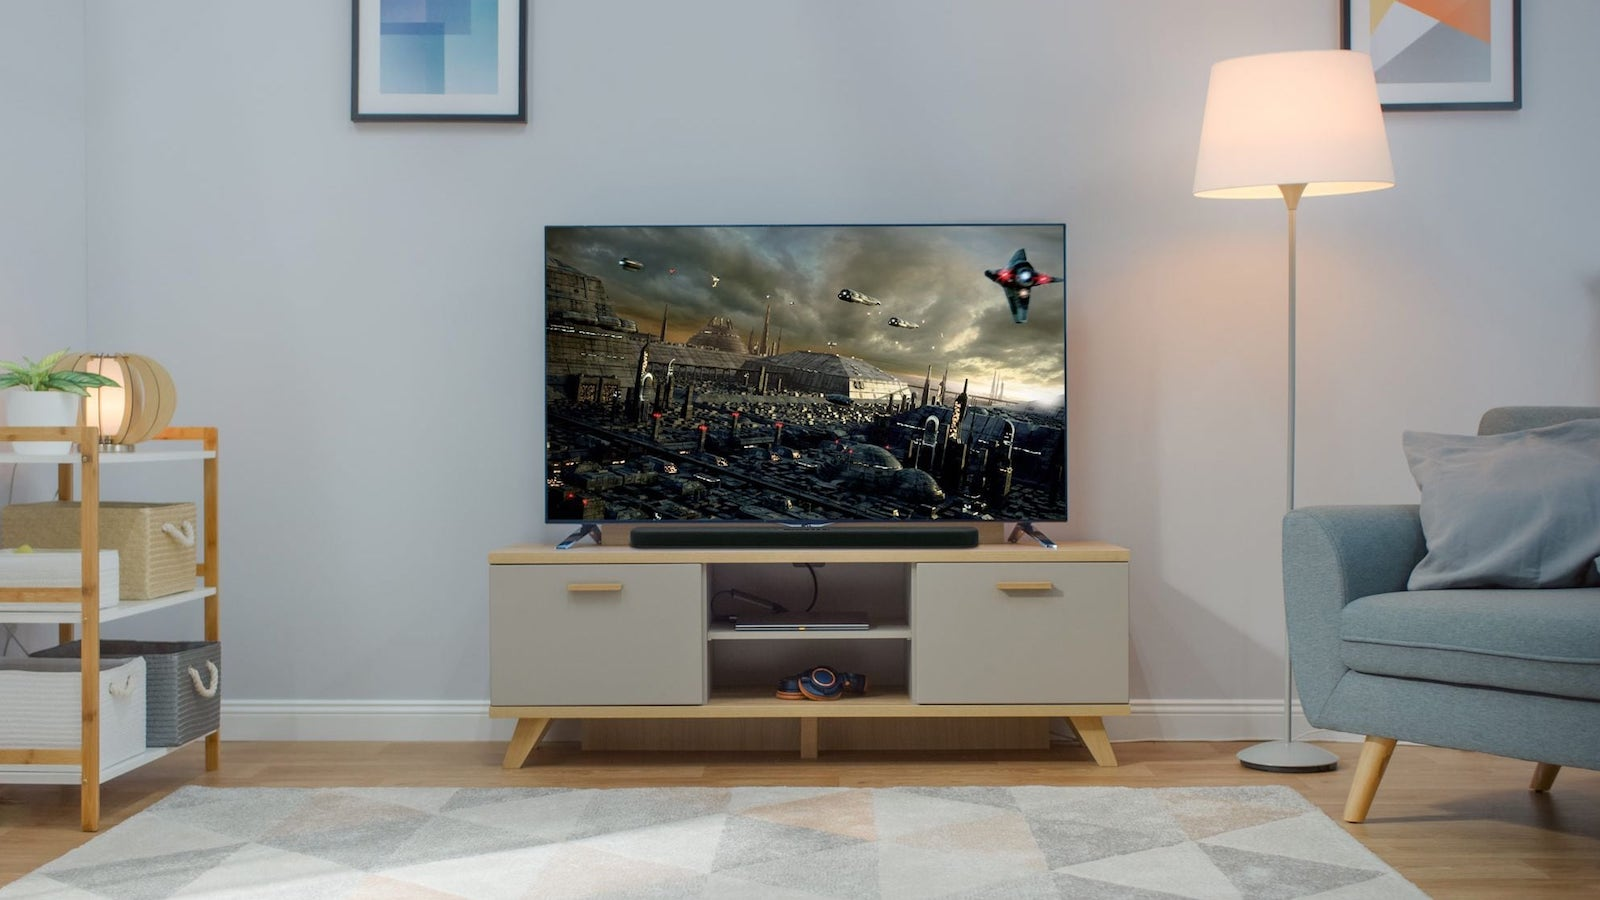 Yamaha SR-B20A home soundbar enhances dialogue clarity